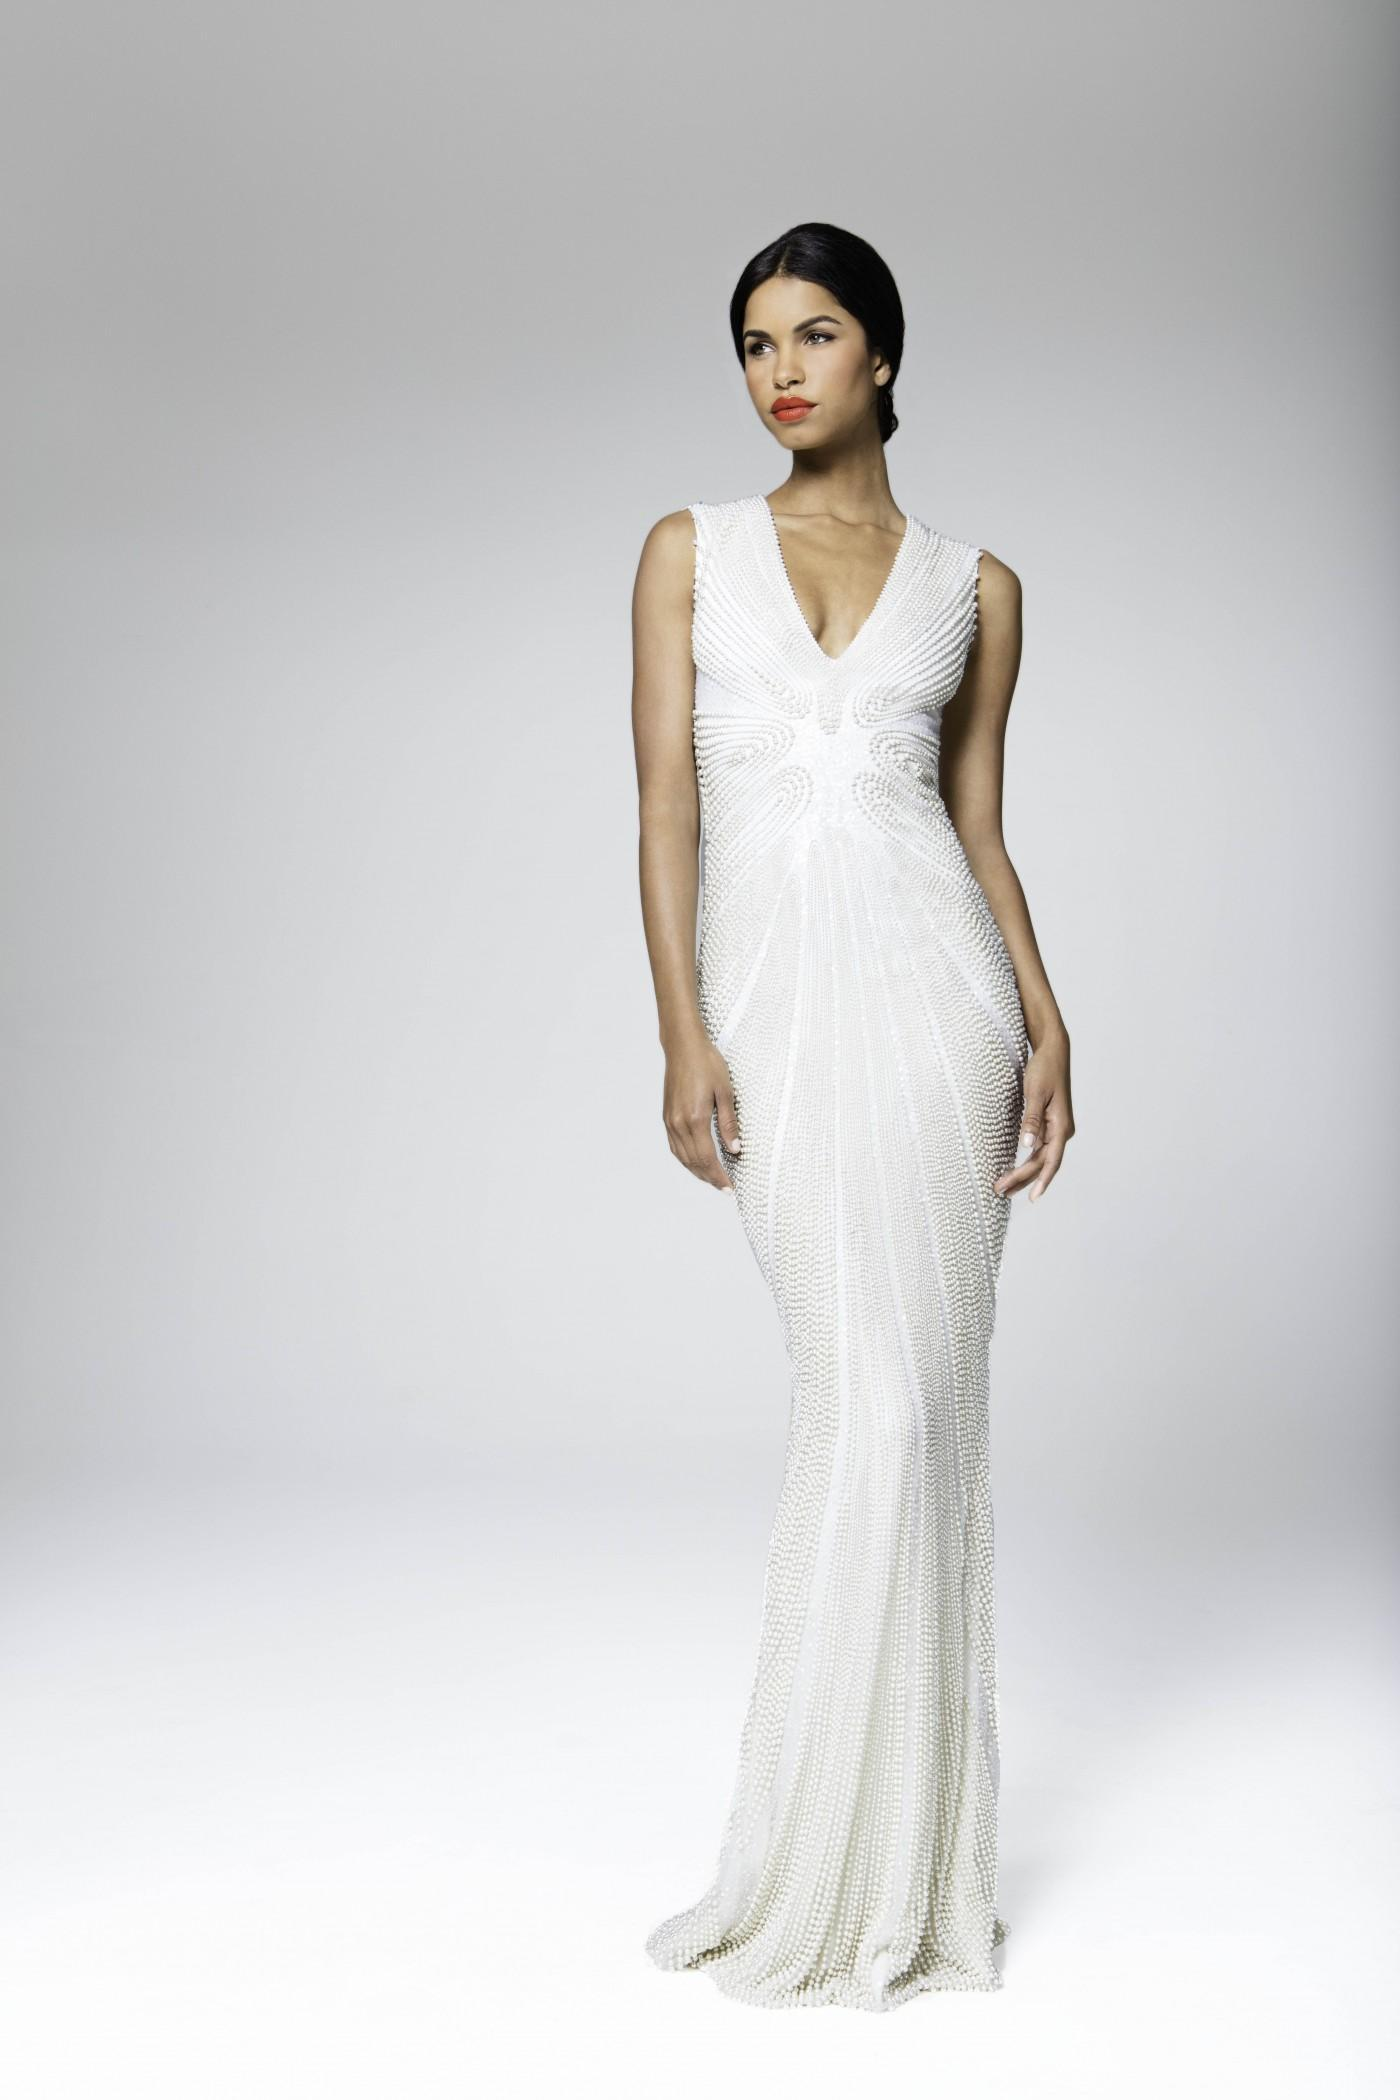 This designer favorite of bella hadid and emily ratajkowski is how do you describe your aesthetic as a wedding dress designer my bridal designs are very much in line with my evening wear collection a true extension junglespirit Choice Image